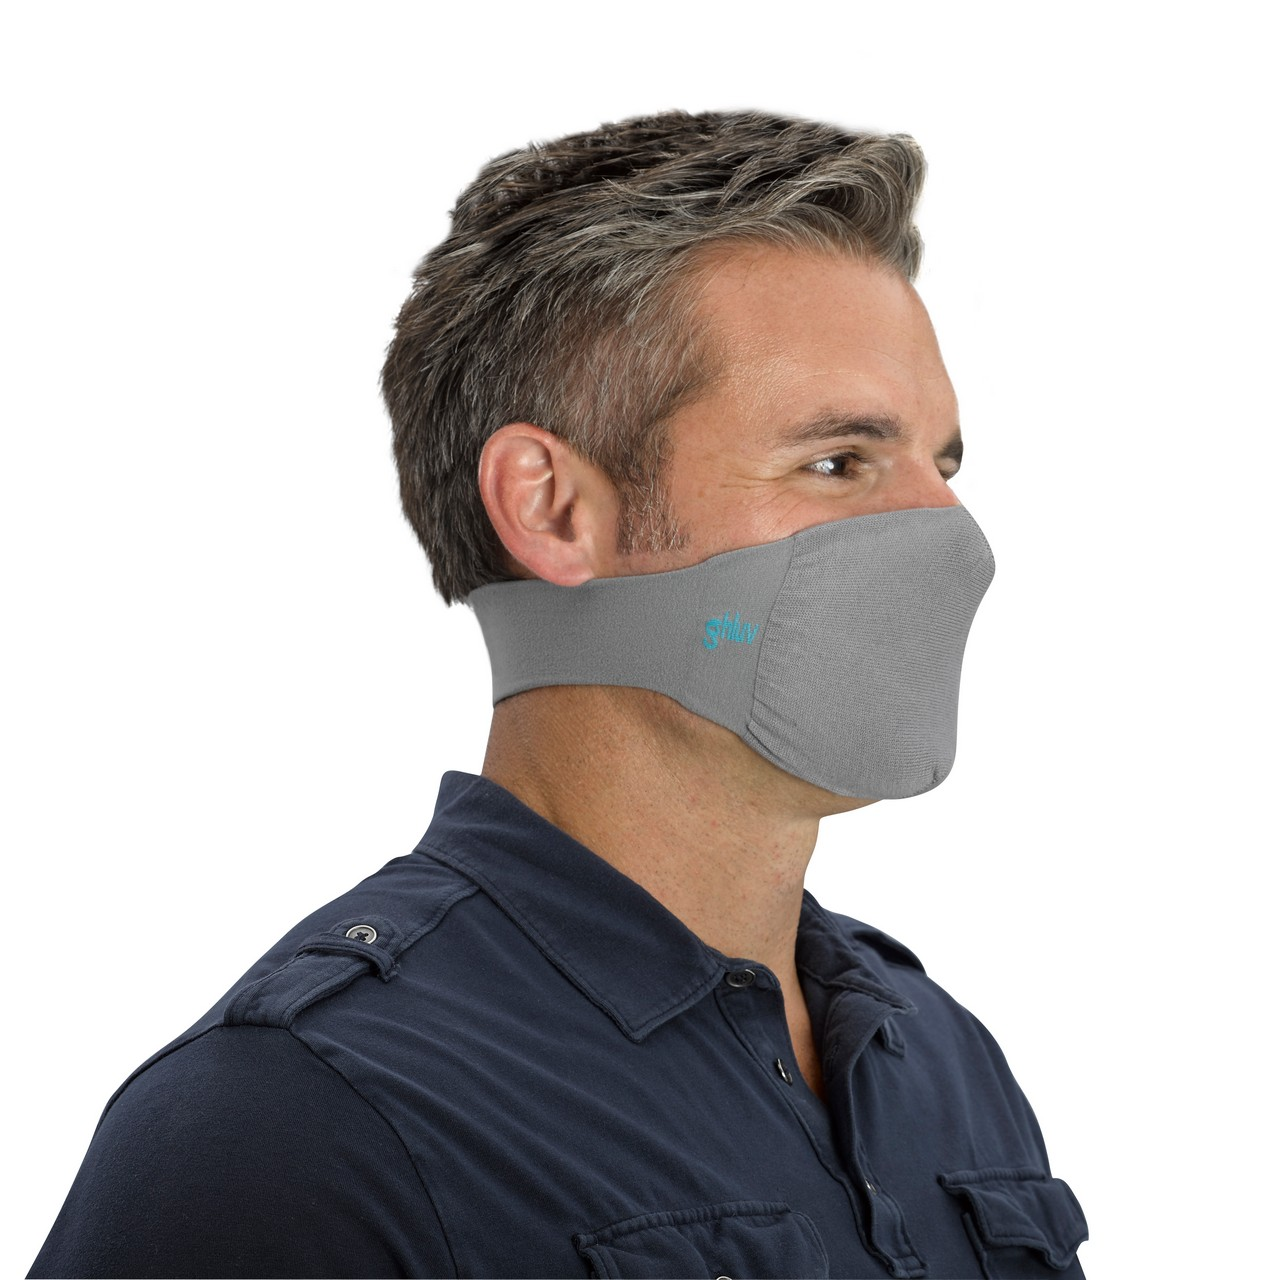 Ghluv Antimicrobial Neck Loop Face Mask (2-pack), Grey